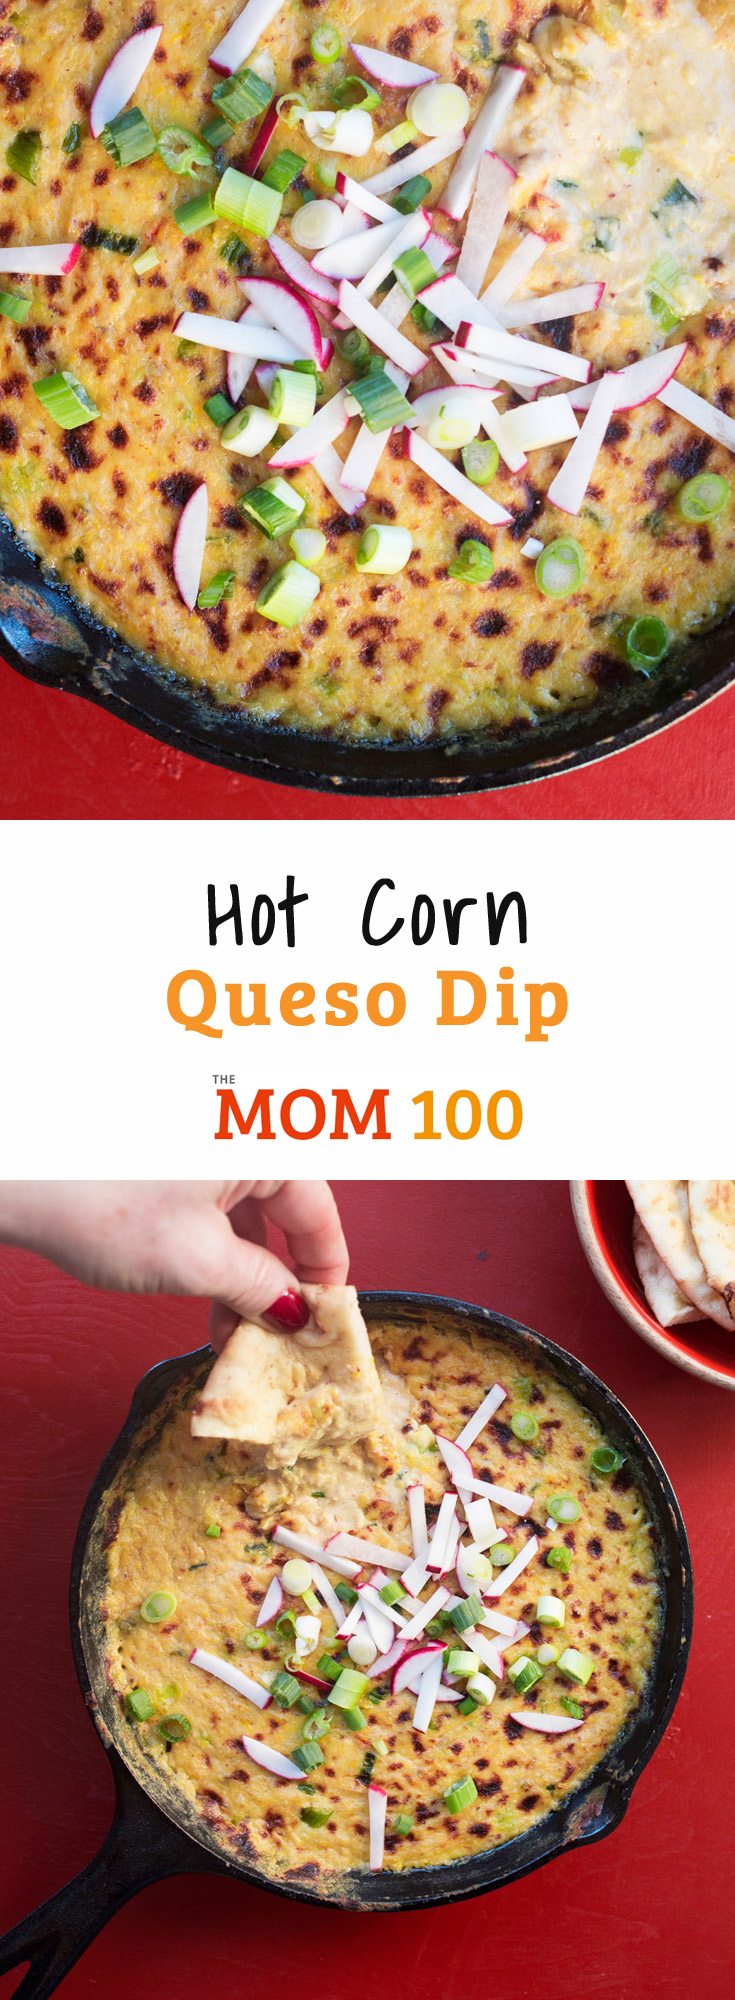 I usually like to cook and eat pretty healthily, but sometimes I like to just roll around in cream and butter and cheese, like with this Hot Corn Queso Dip.